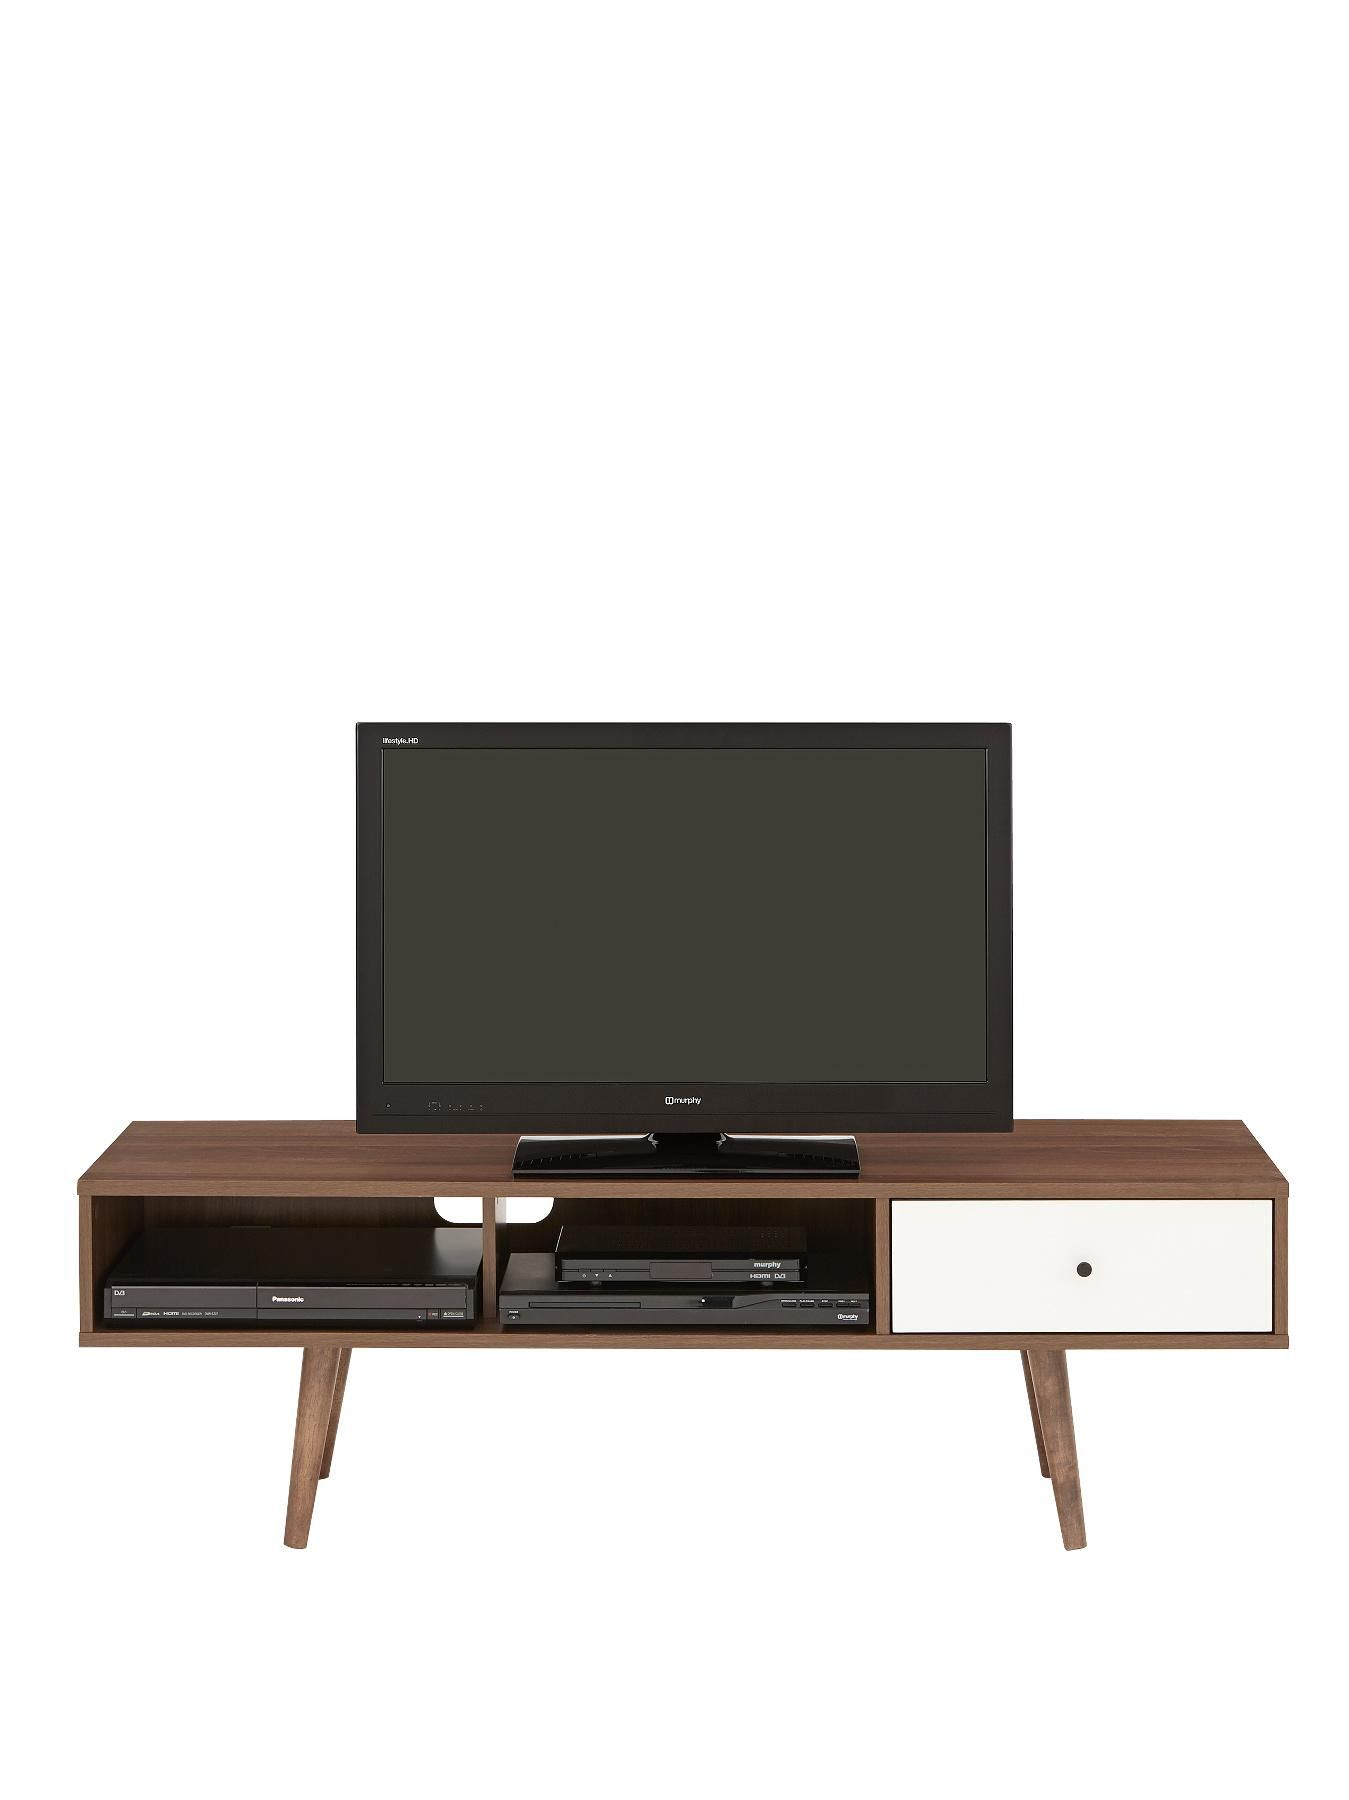 Monty Retro Tv Unit Up To 60 Inch Tv -